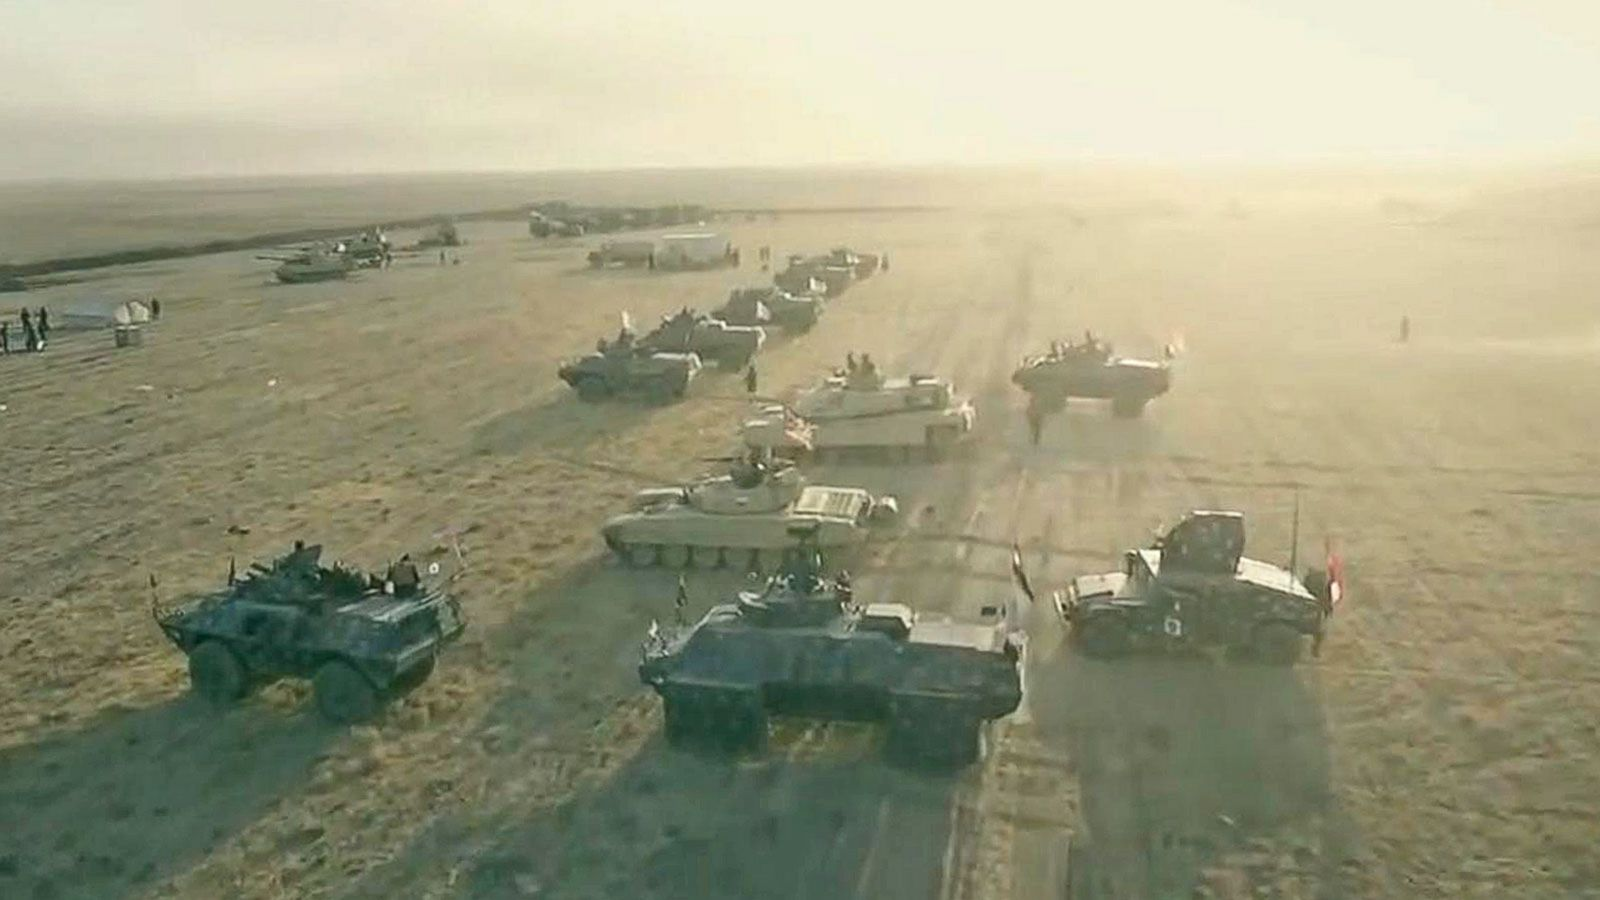 VIDEO: Drone Footage Captures Images of Iraqi Army Offensive to Liberate Mosul